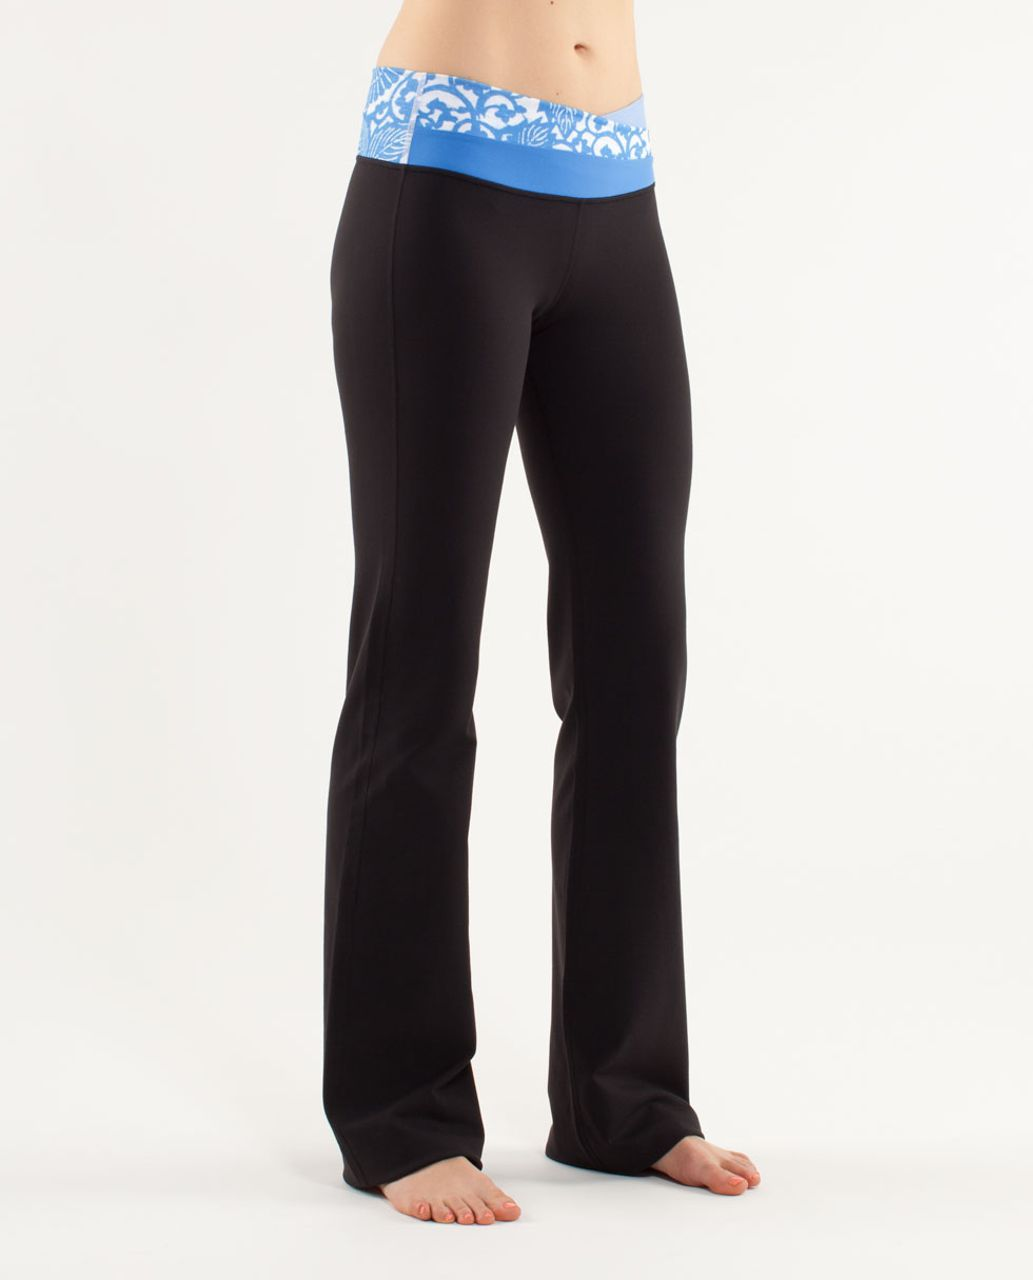 Lululemon Astro Pant (Tall) - Black /  Wee Stripe White Porcelaine /  Beachy Floral White Porcelaine